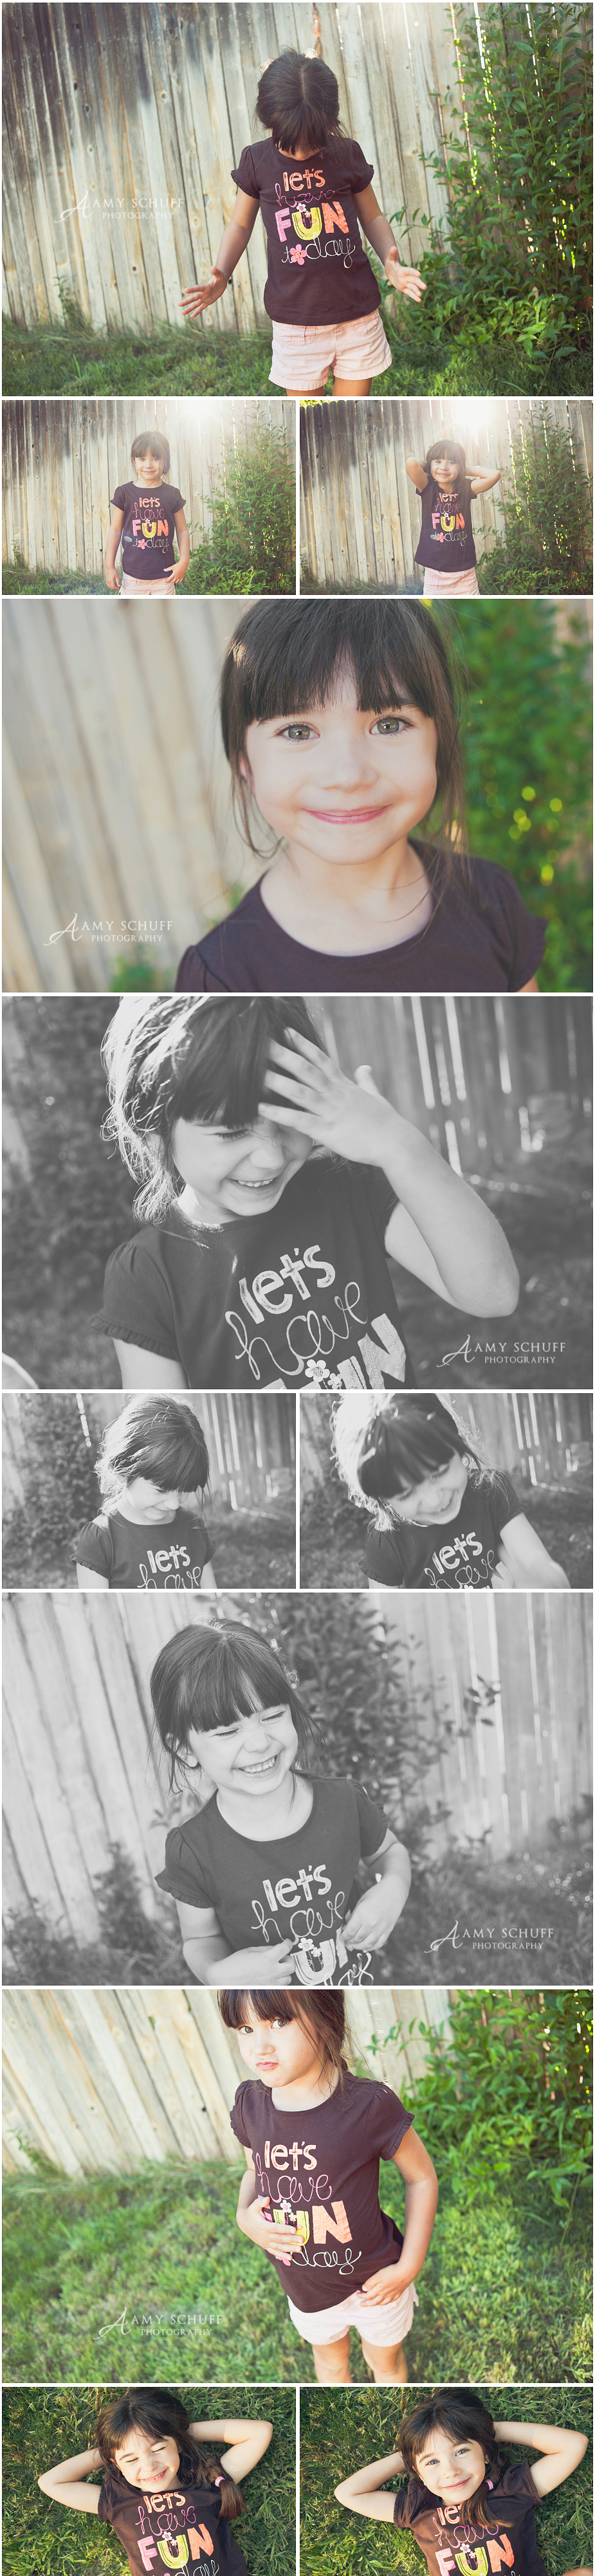 Amy Schuff - Sacramento Kids Photography